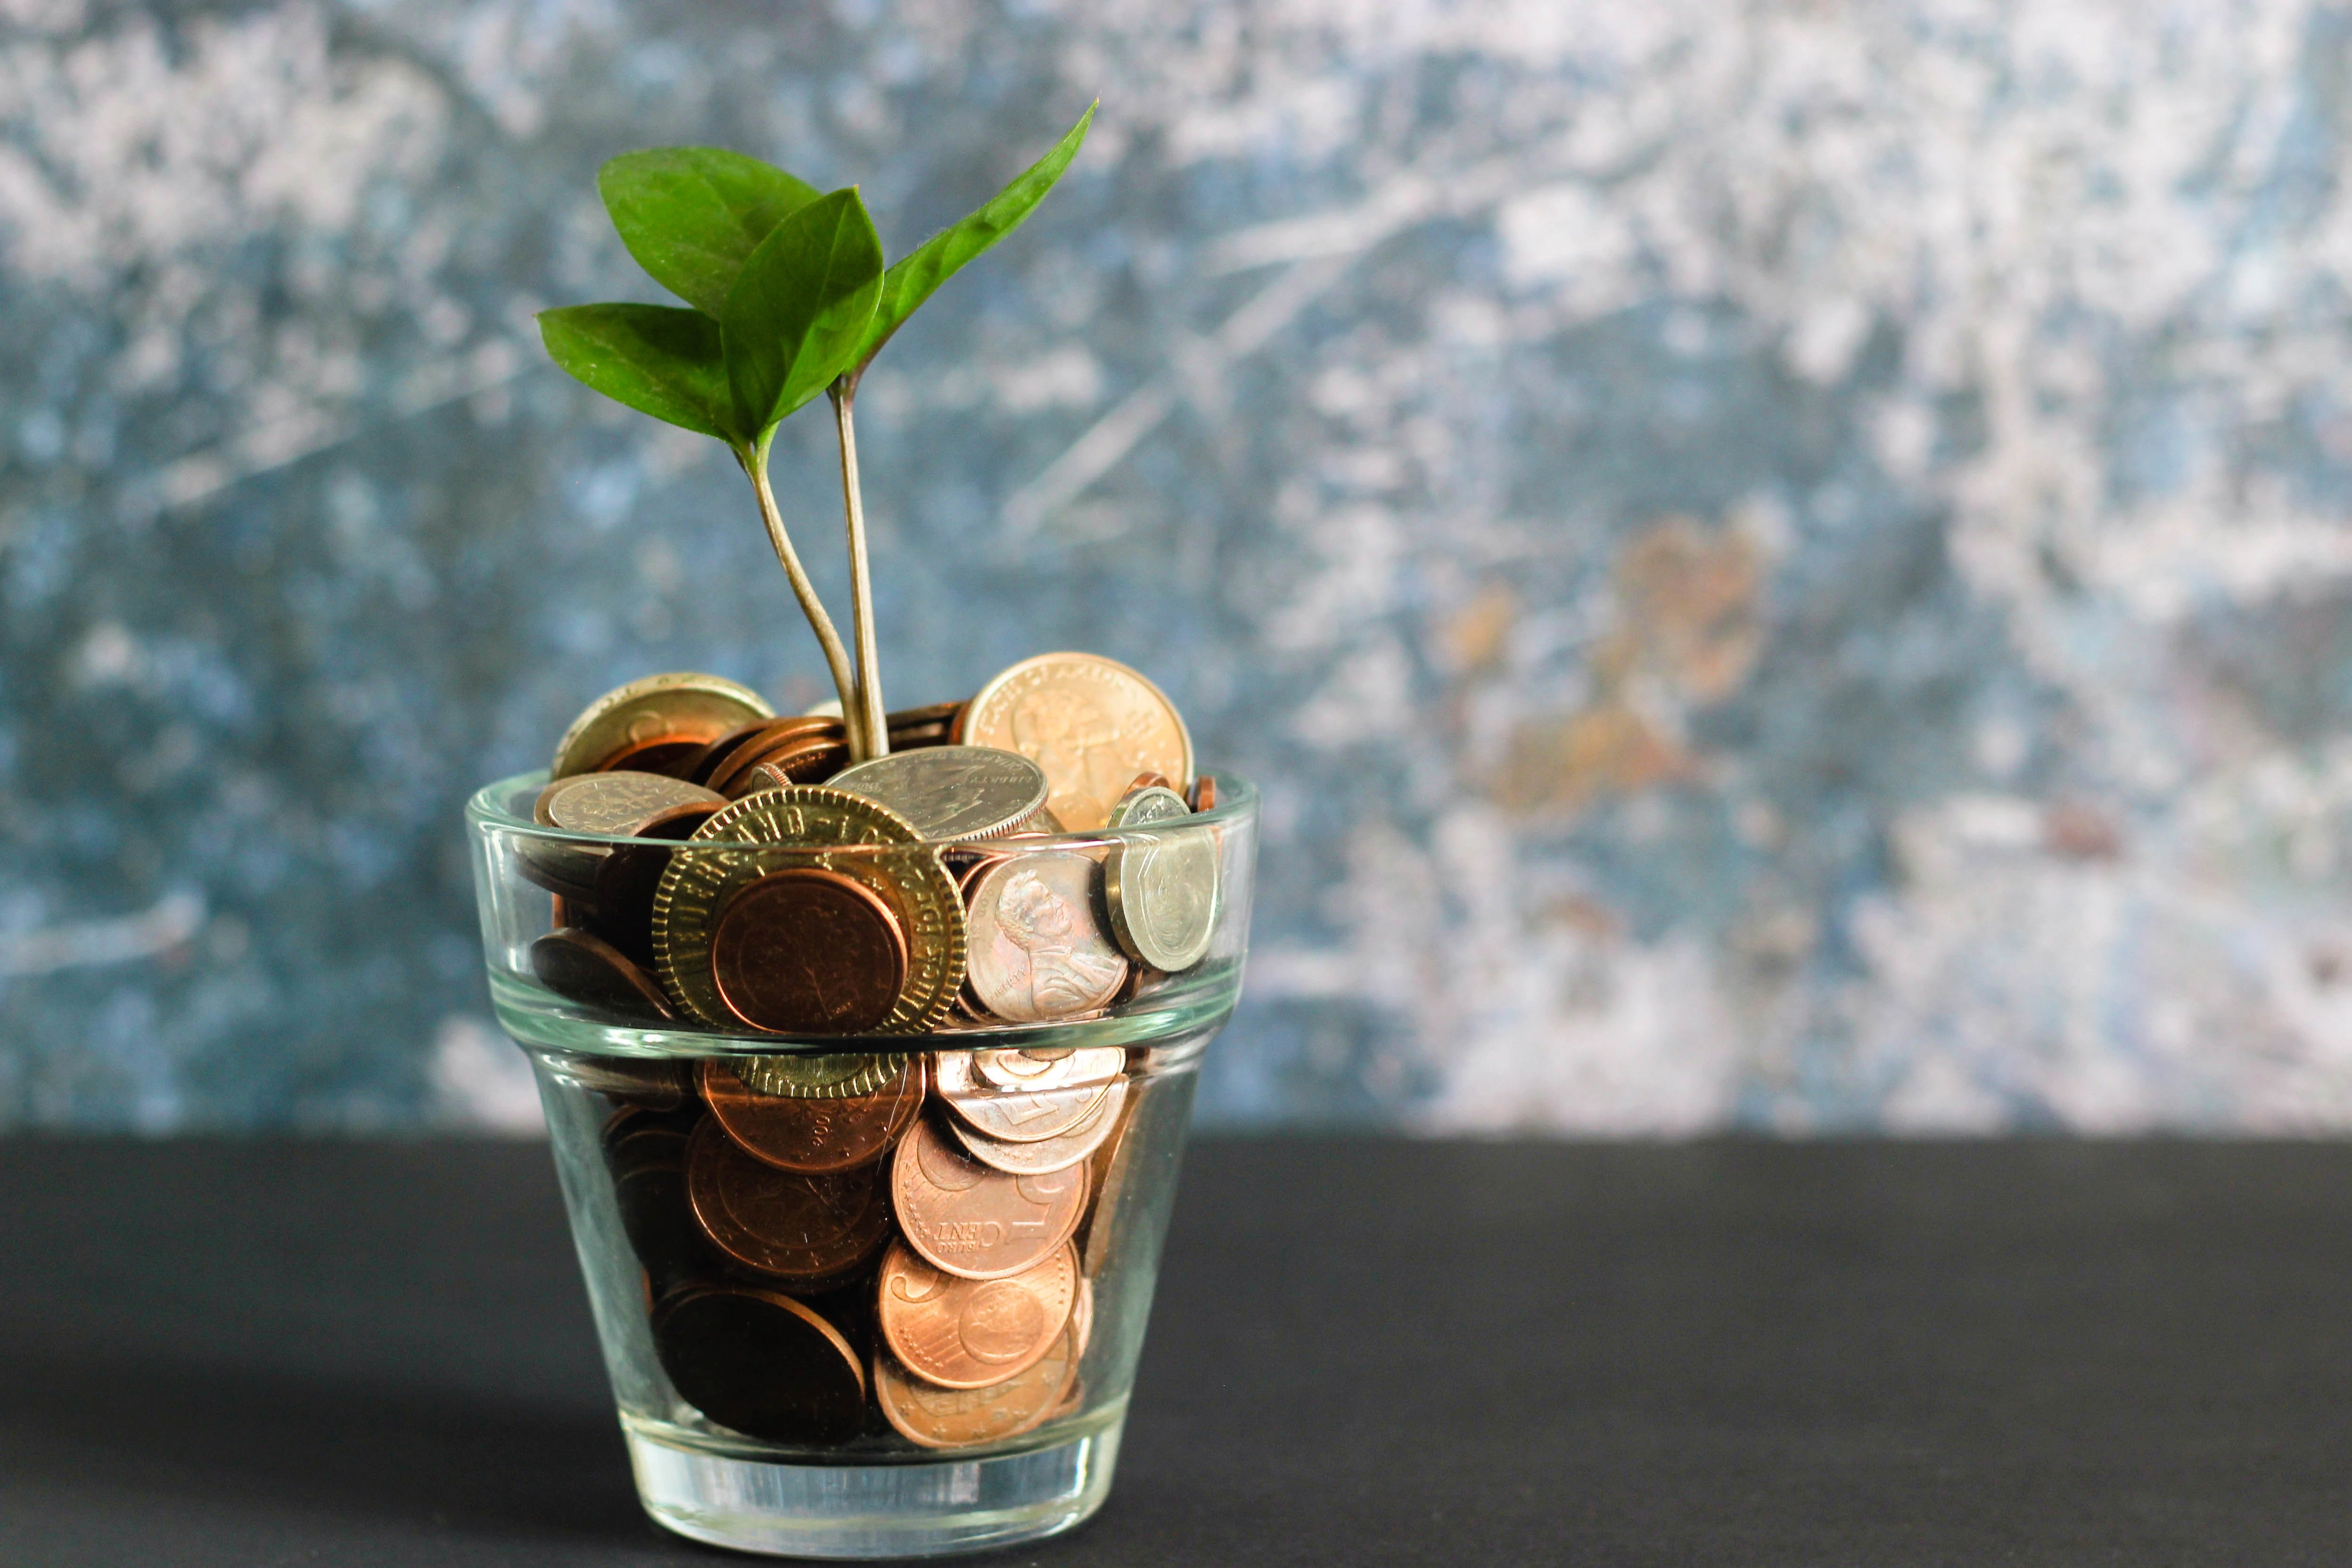 Plant growing out of money cup